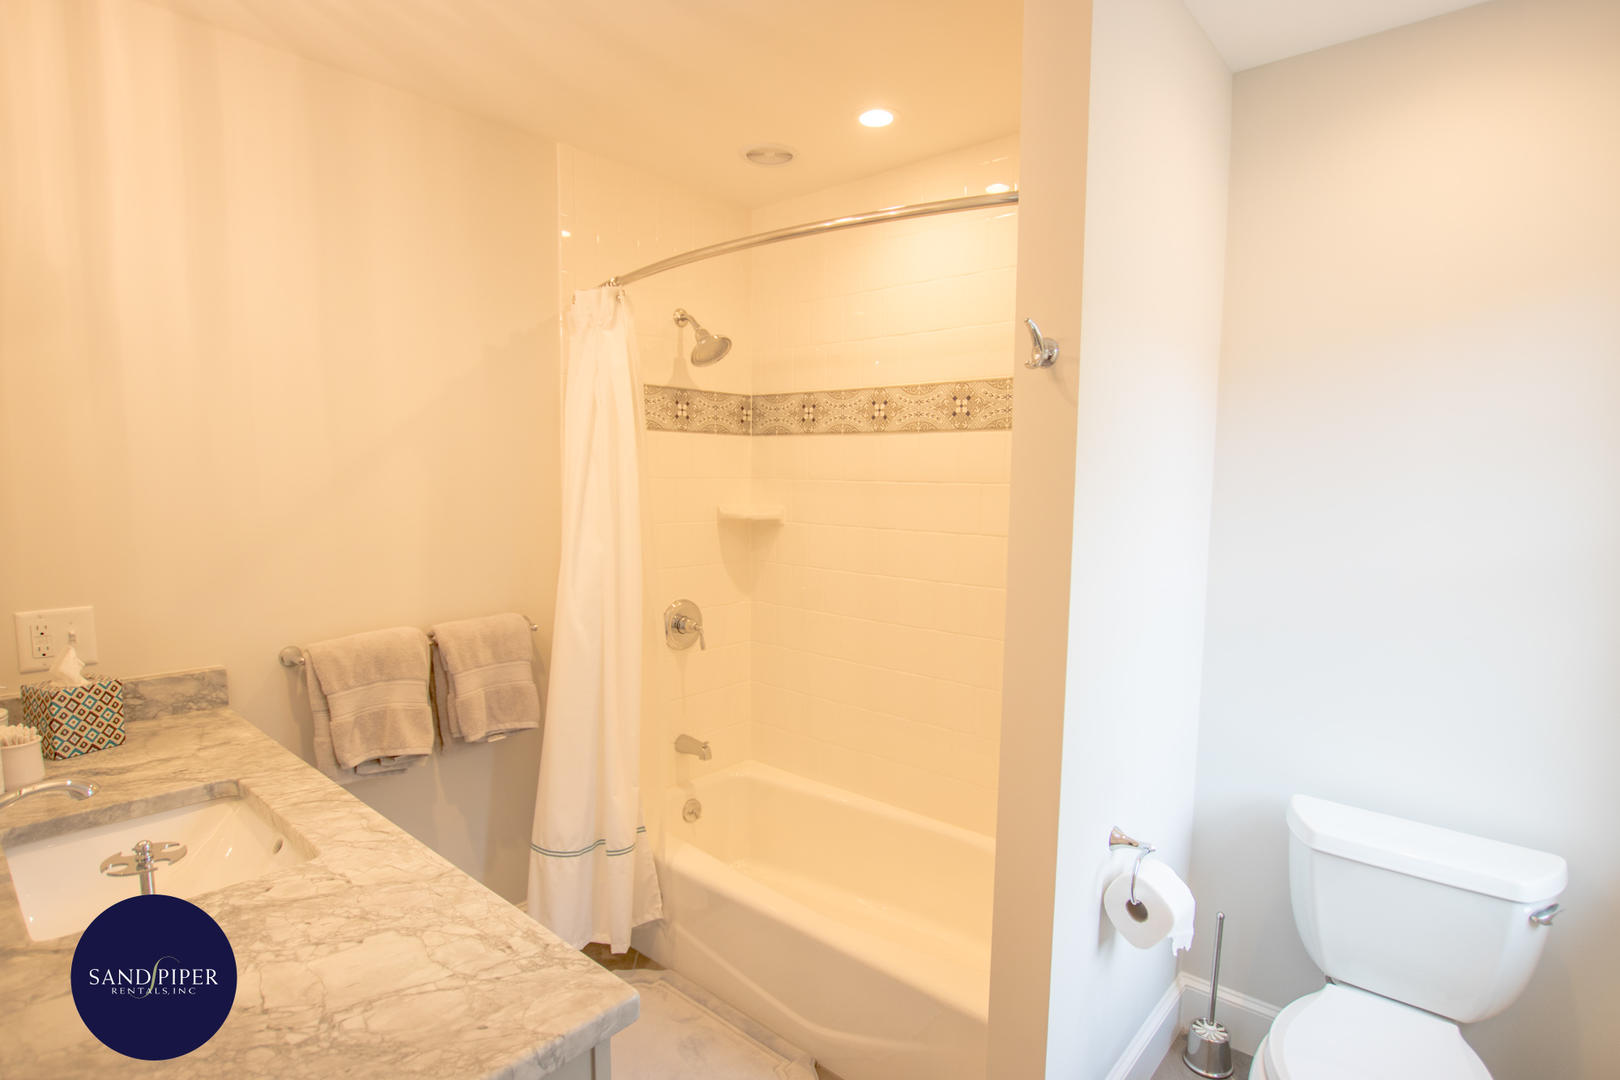 BR4 bath shower and tub combo